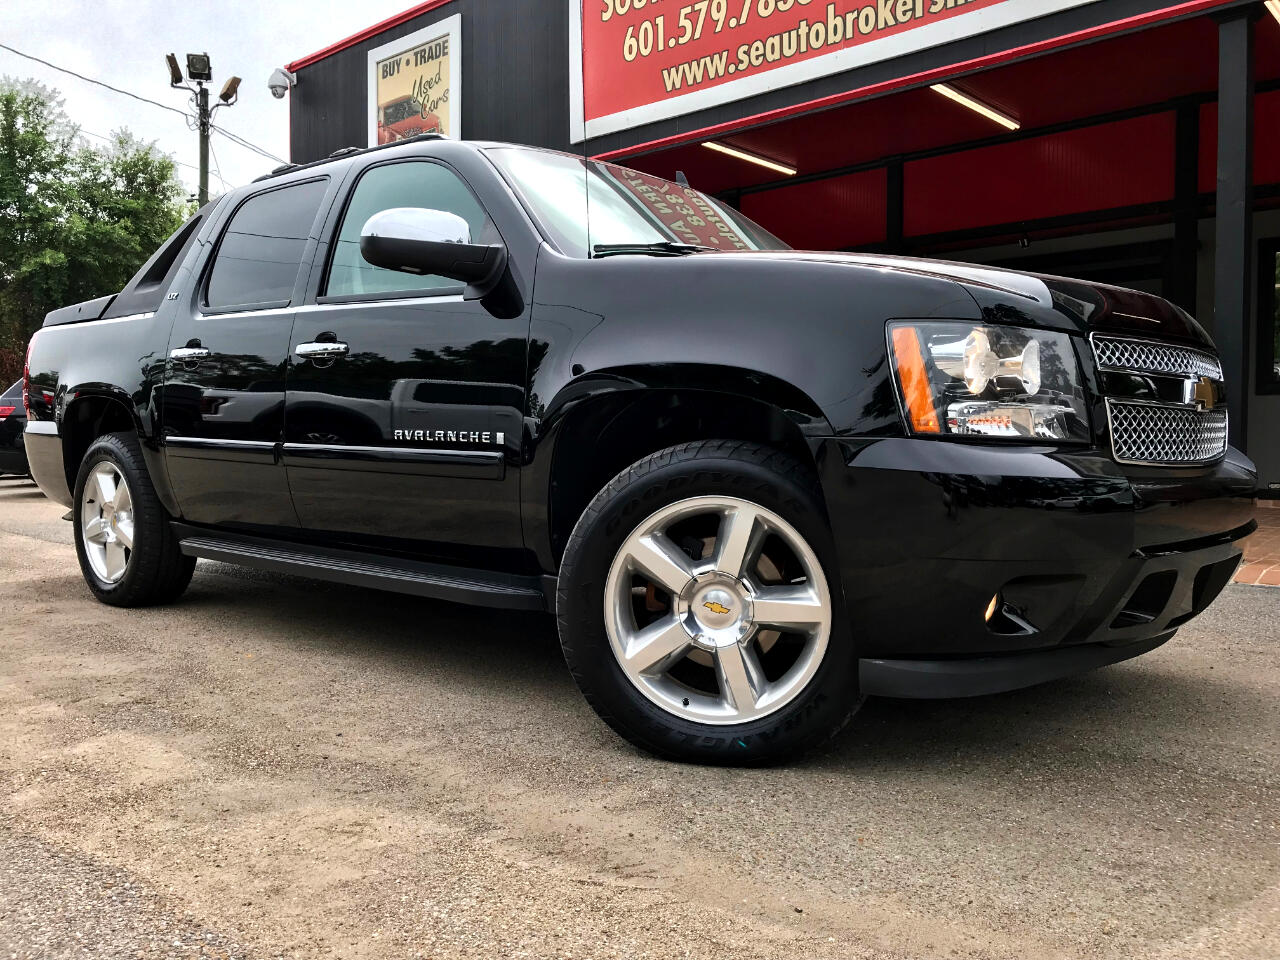 2007 Chevrolet Avalanche LTZ 2WD FULLY LOADED